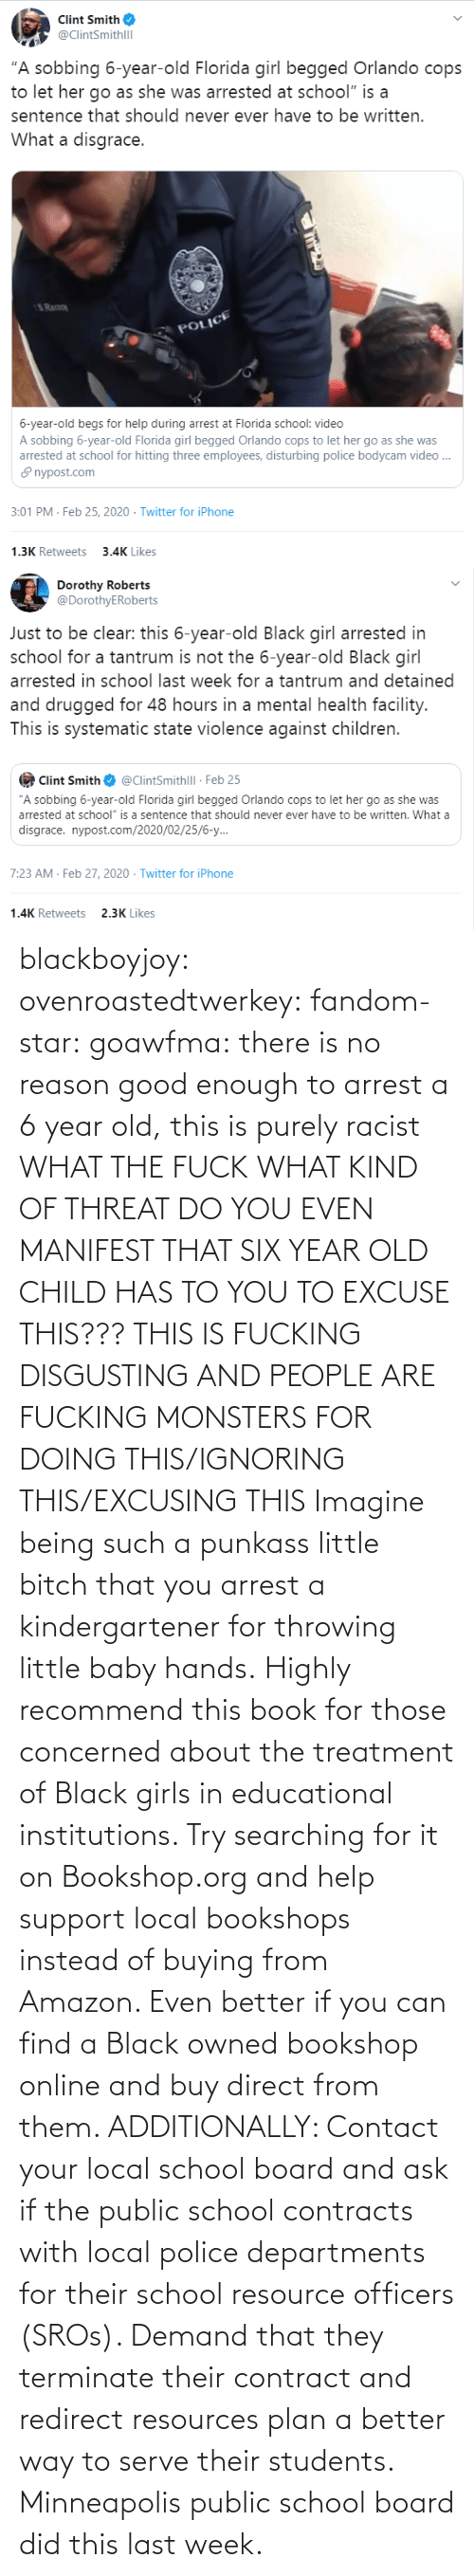 Minneapolis: blackboyjoy:  ovenroastedtwerkey:  fandom-star:  goawfma: there is no reason good enough to arrest a 6 year old, this is purely racist WHAT THE FUCK WHAT KIND OF THREAT DO YOU EVEN MANIFEST THAT SIX YEAR OLD CHILD HAS TO YOU TO EXCUSE THIS??? THIS IS FUCKING DISGUSTING AND PEOPLE ARE FUCKING MONSTERS FOR DOING THIS/IGNORING THIS/EXCUSING THIS    Imagine being such a punkass little bitch that you arrest a kindergartener for throwing little baby hands.  Highly recommend this book for those concerned about the treatment of Black girls in educational institutions.  Try searching for it on Bookshop.org and help support local bookshops instead of buying from Amazon. Even better if you can find a Black owned bookshop online and buy direct from them.  ADDITIONALLY: Contact your local school board and ask if the public school contracts with local police departments for their school resource officers (SROs). Demand that they terminate their contract and redirect resources plan a better way to serve their students. Minneapolis public school board did this last week.